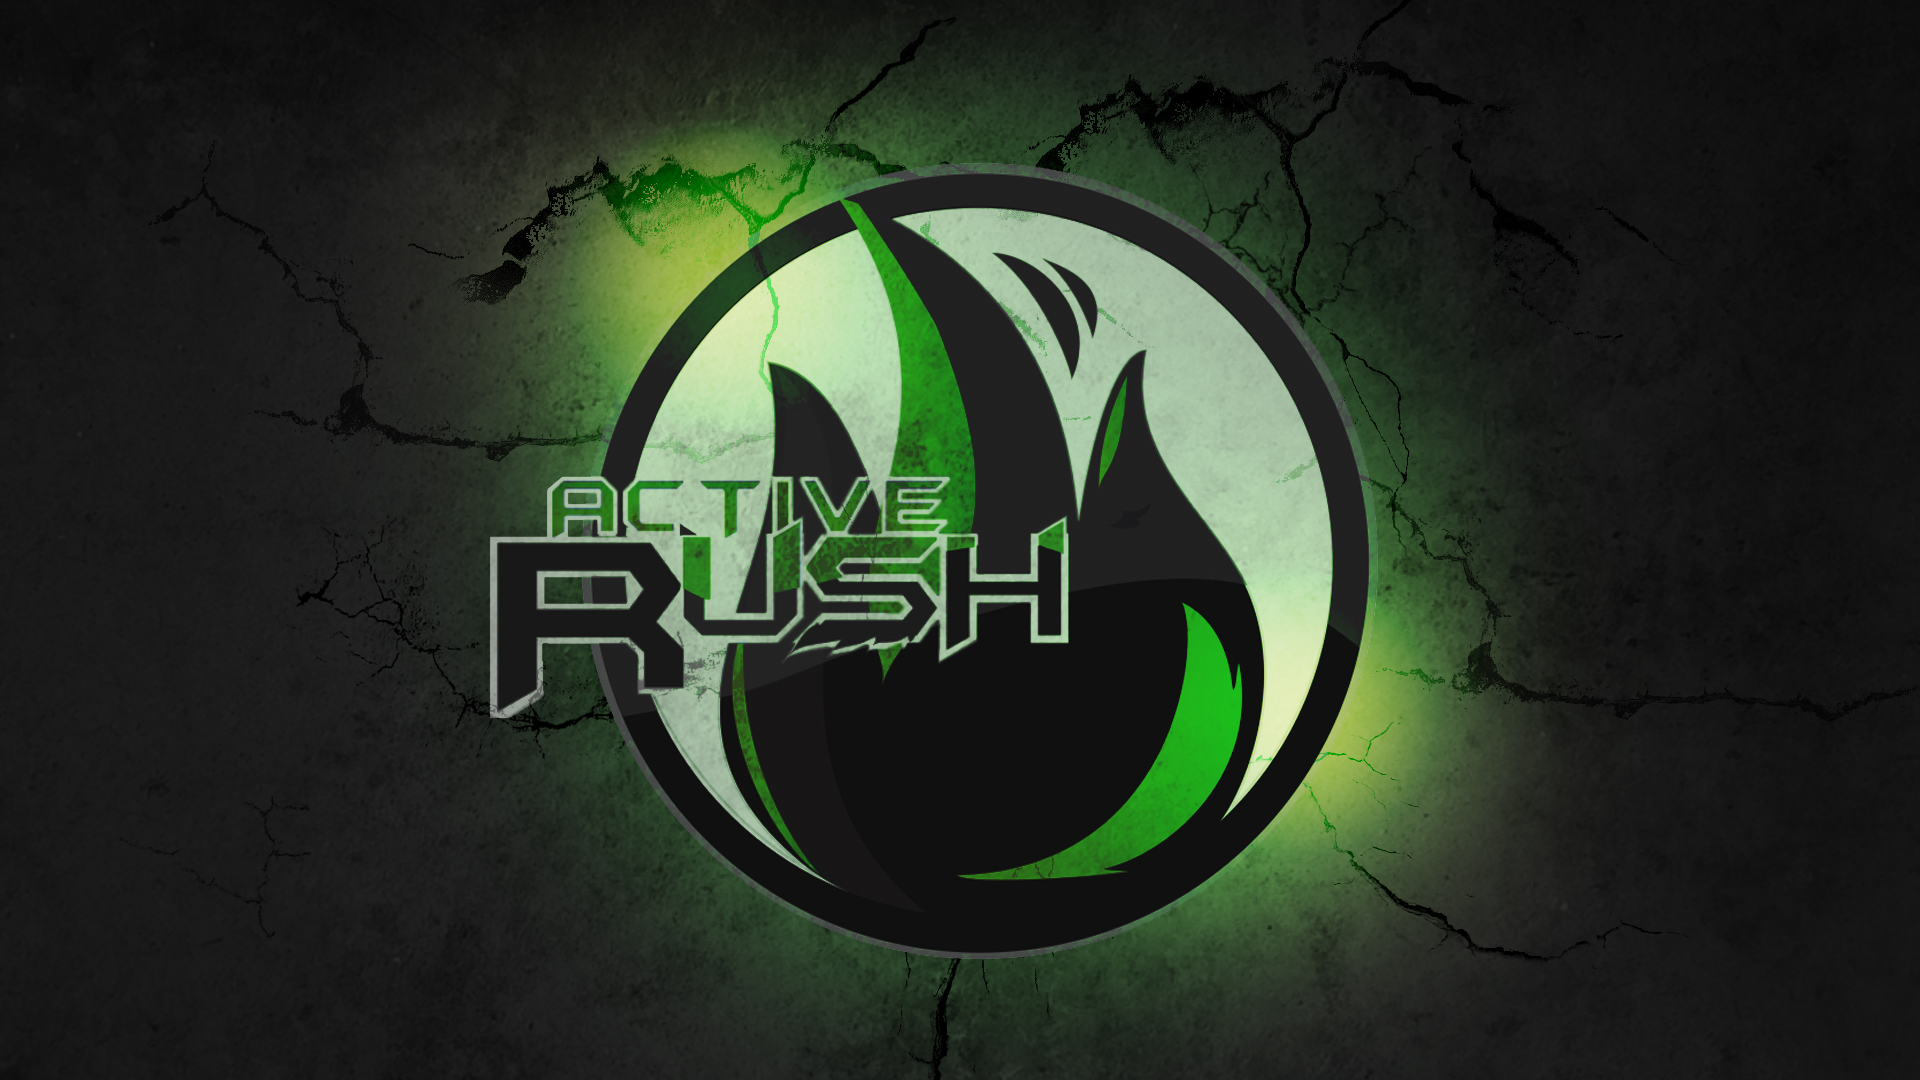 Active rush background by markveillette on deviantart active rush background by markveillette active rush background by markveillette voltagebd Gallery